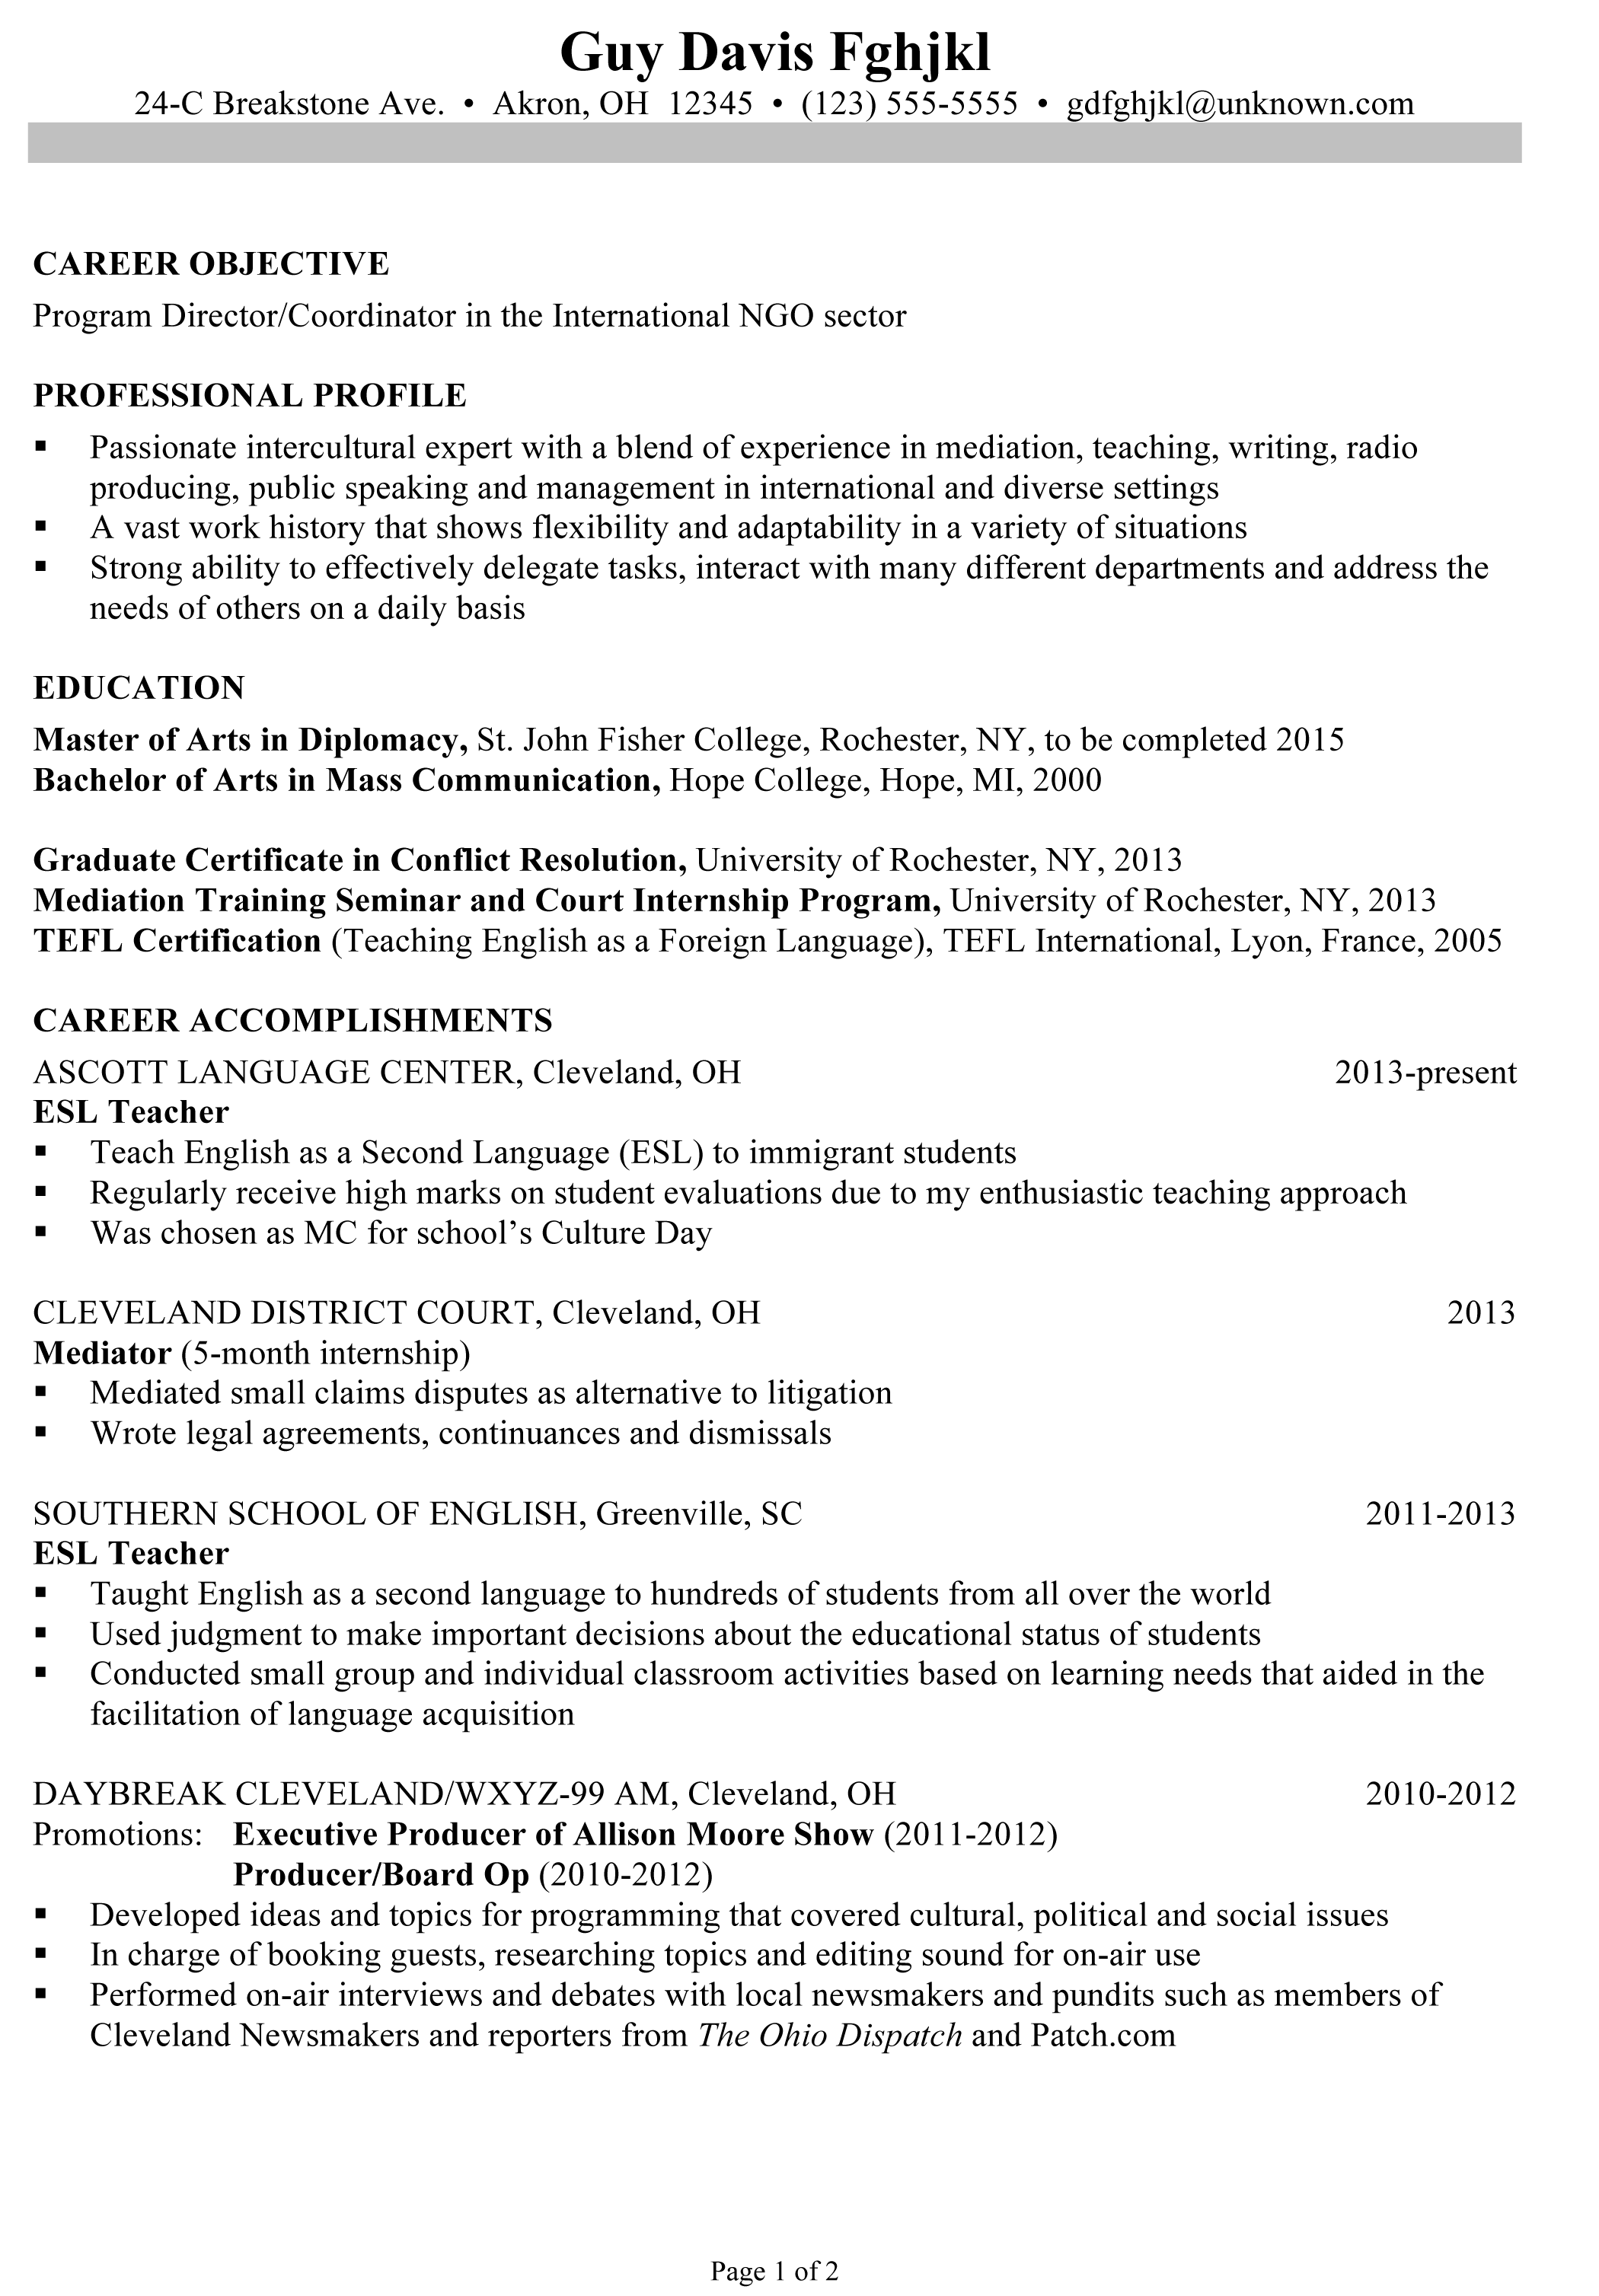 tefl resume sample cover letter esl application writers site samples chronological program director coordinator - Esl Resume Examples